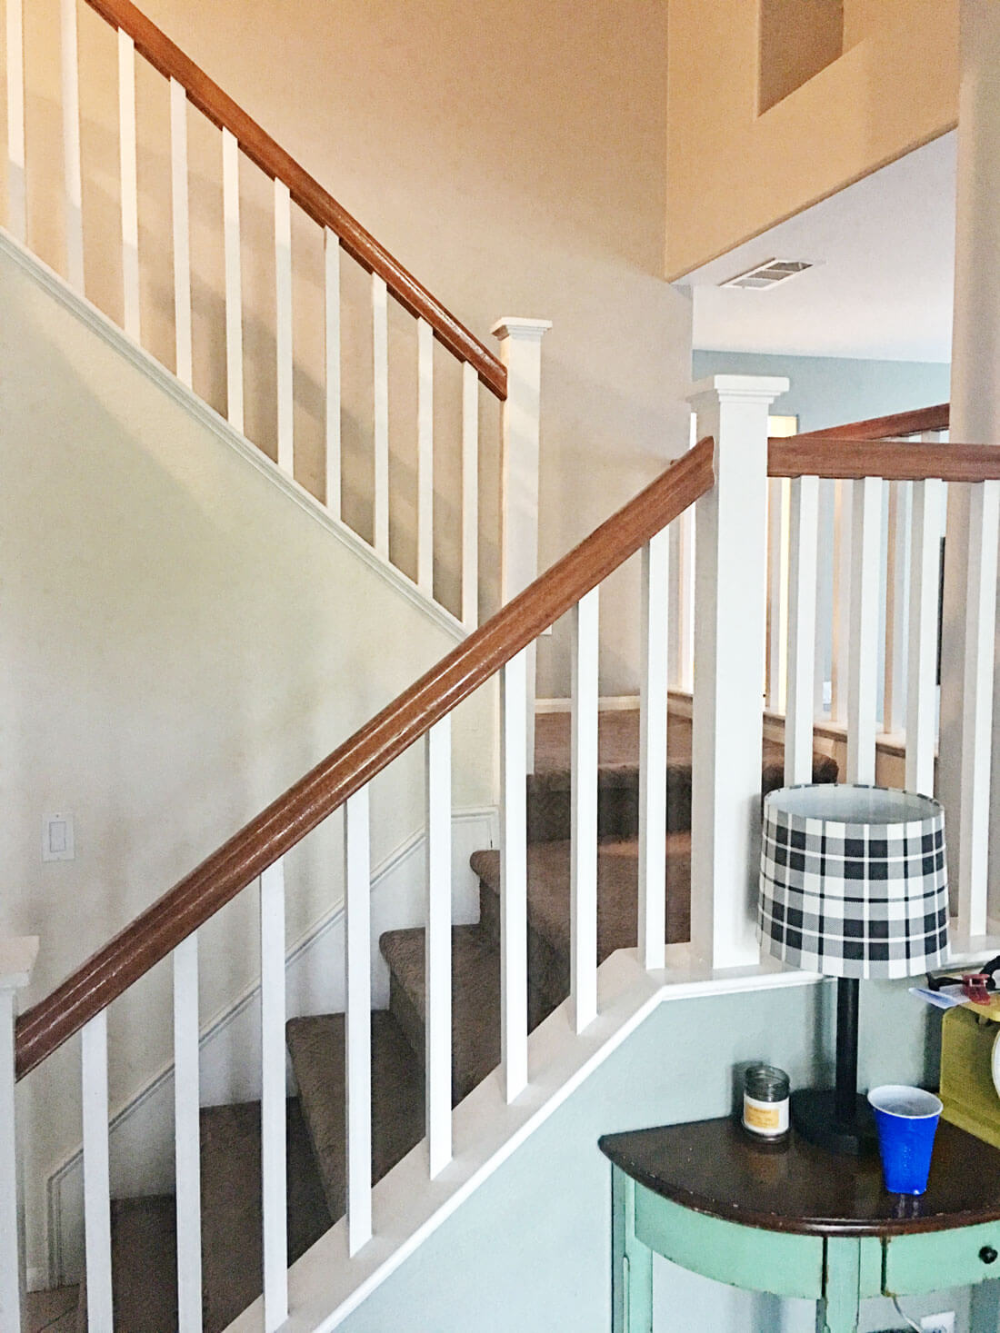 How to Paint Your Stair Railings and Banister | Painted ...